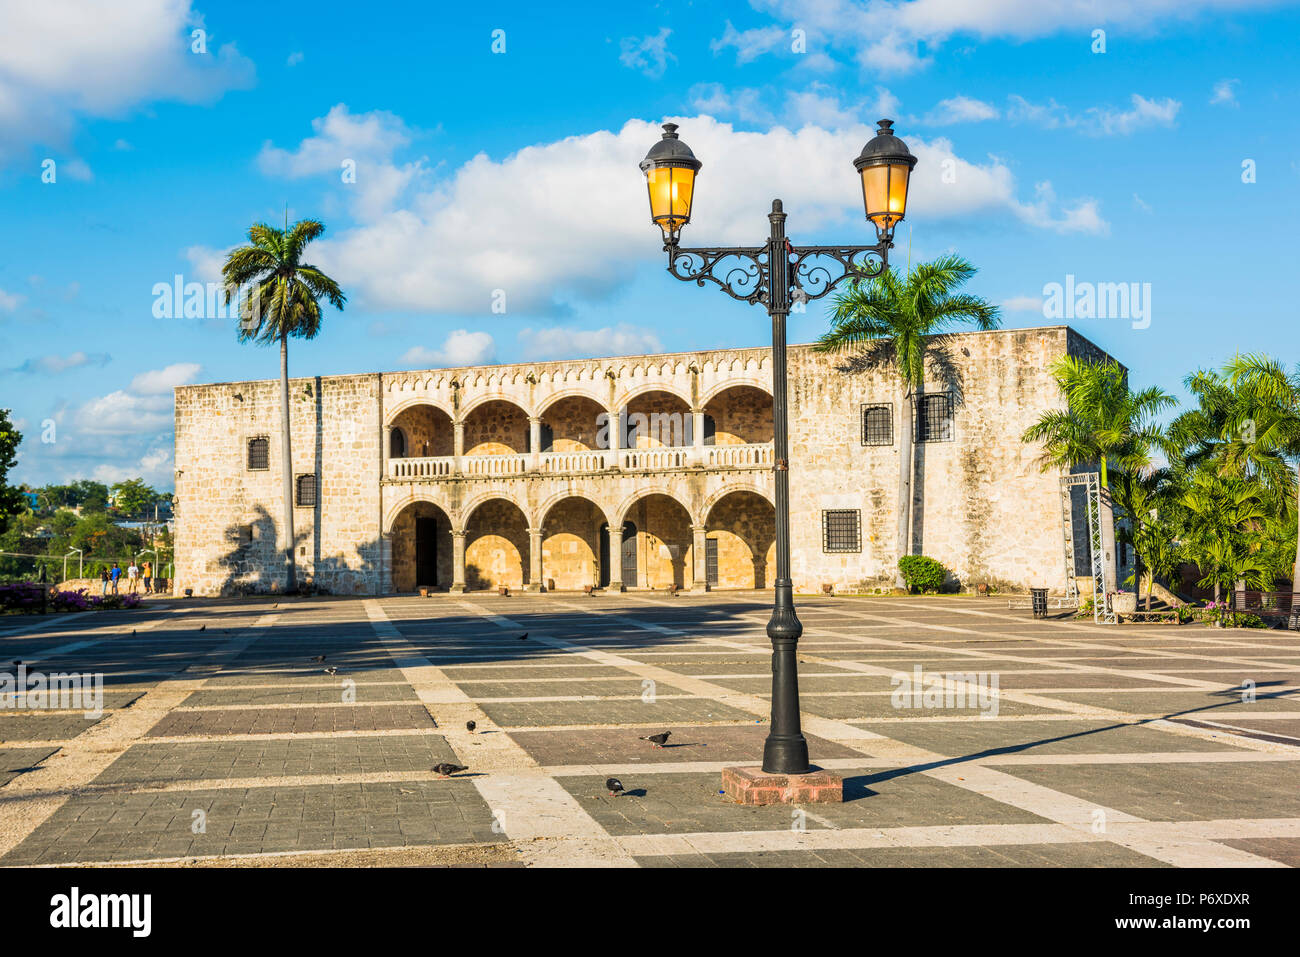 Colonial Zone (Ciudad Colonial), Santo Domingo, Dominican Republic. Alcazar de Colon (Columbus Alcazar) palace. - Stock Image